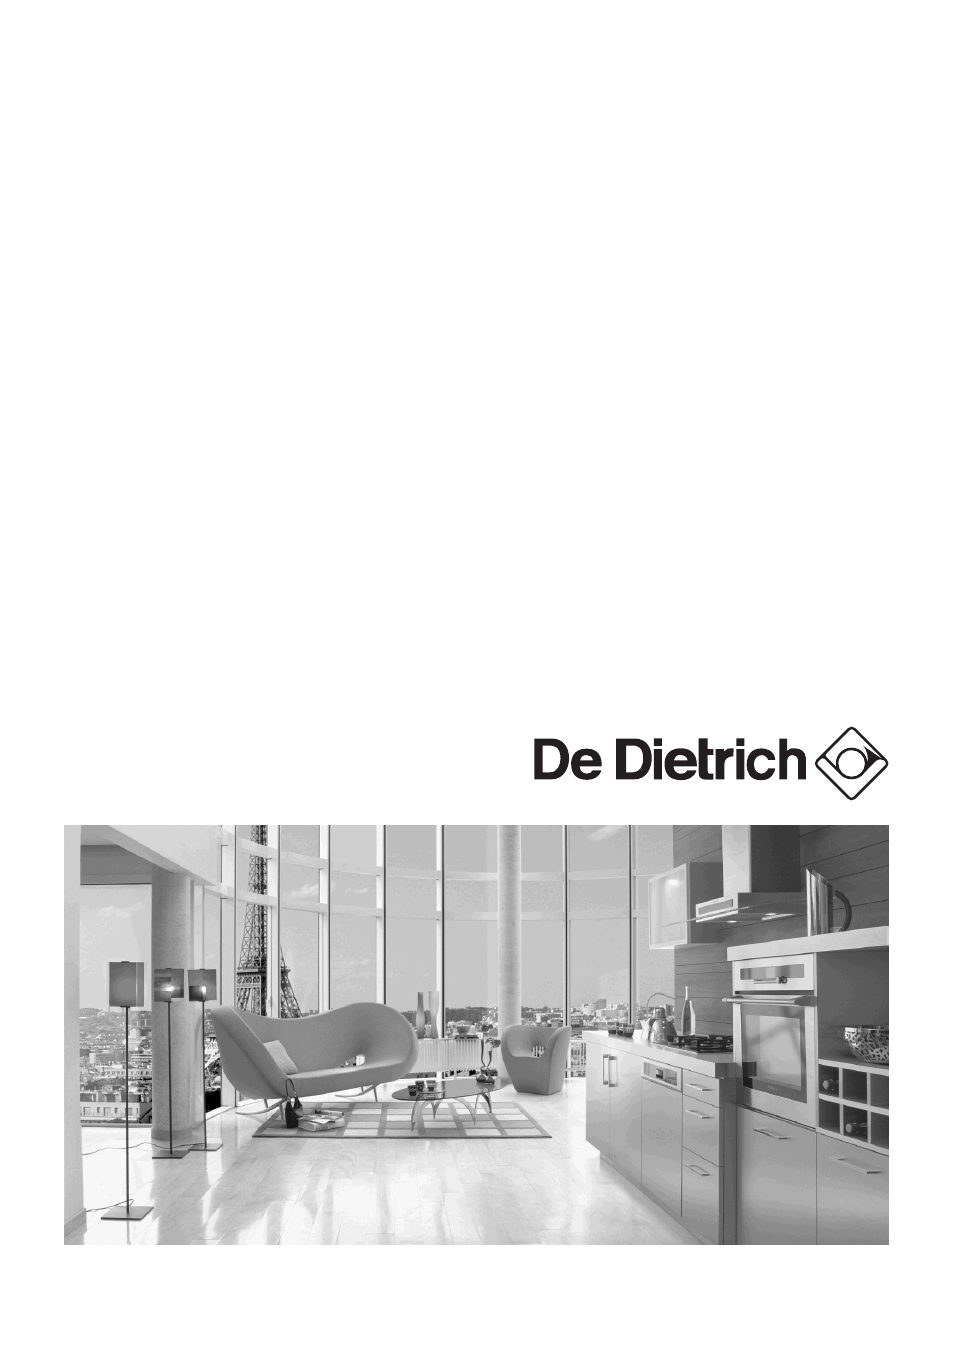 de dietrich dfs911je manual del usuario p ginas 16. Black Bedroom Furniture Sets. Home Design Ideas